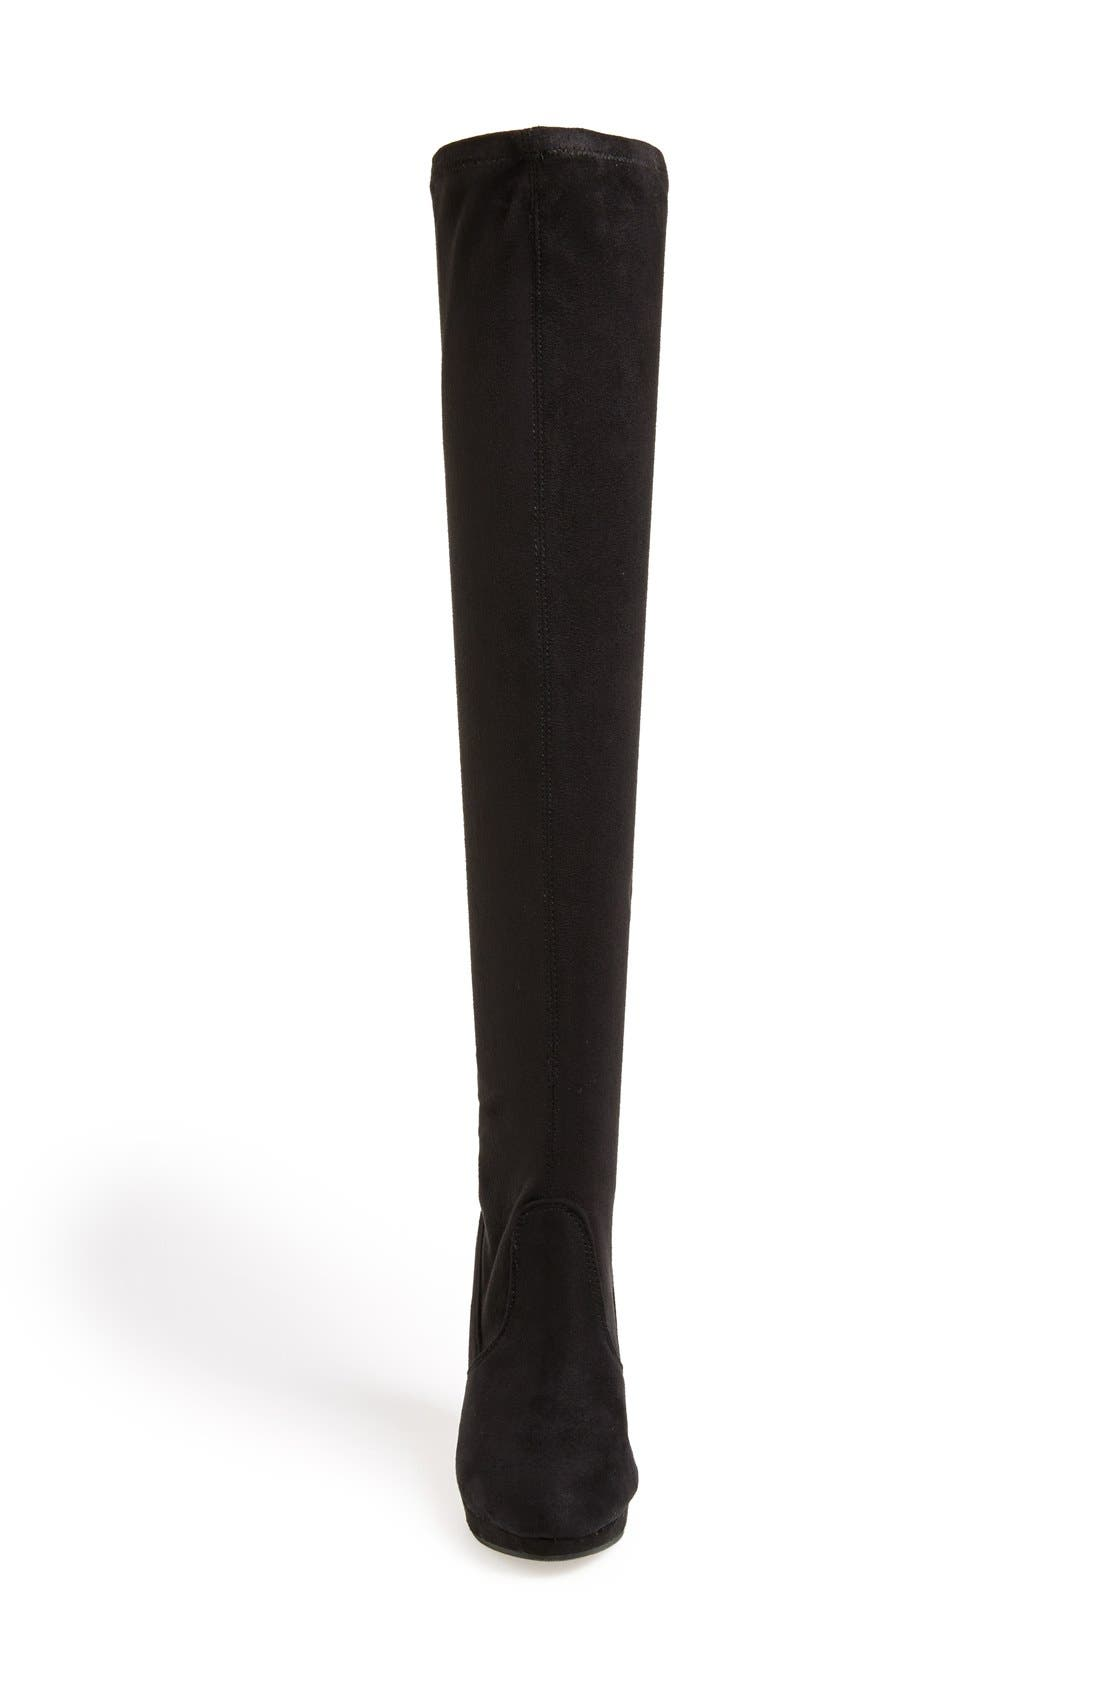 REPORT 'Nadya' Over The Knee Boot,                             Alternate thumbnail 3, color,                             Black